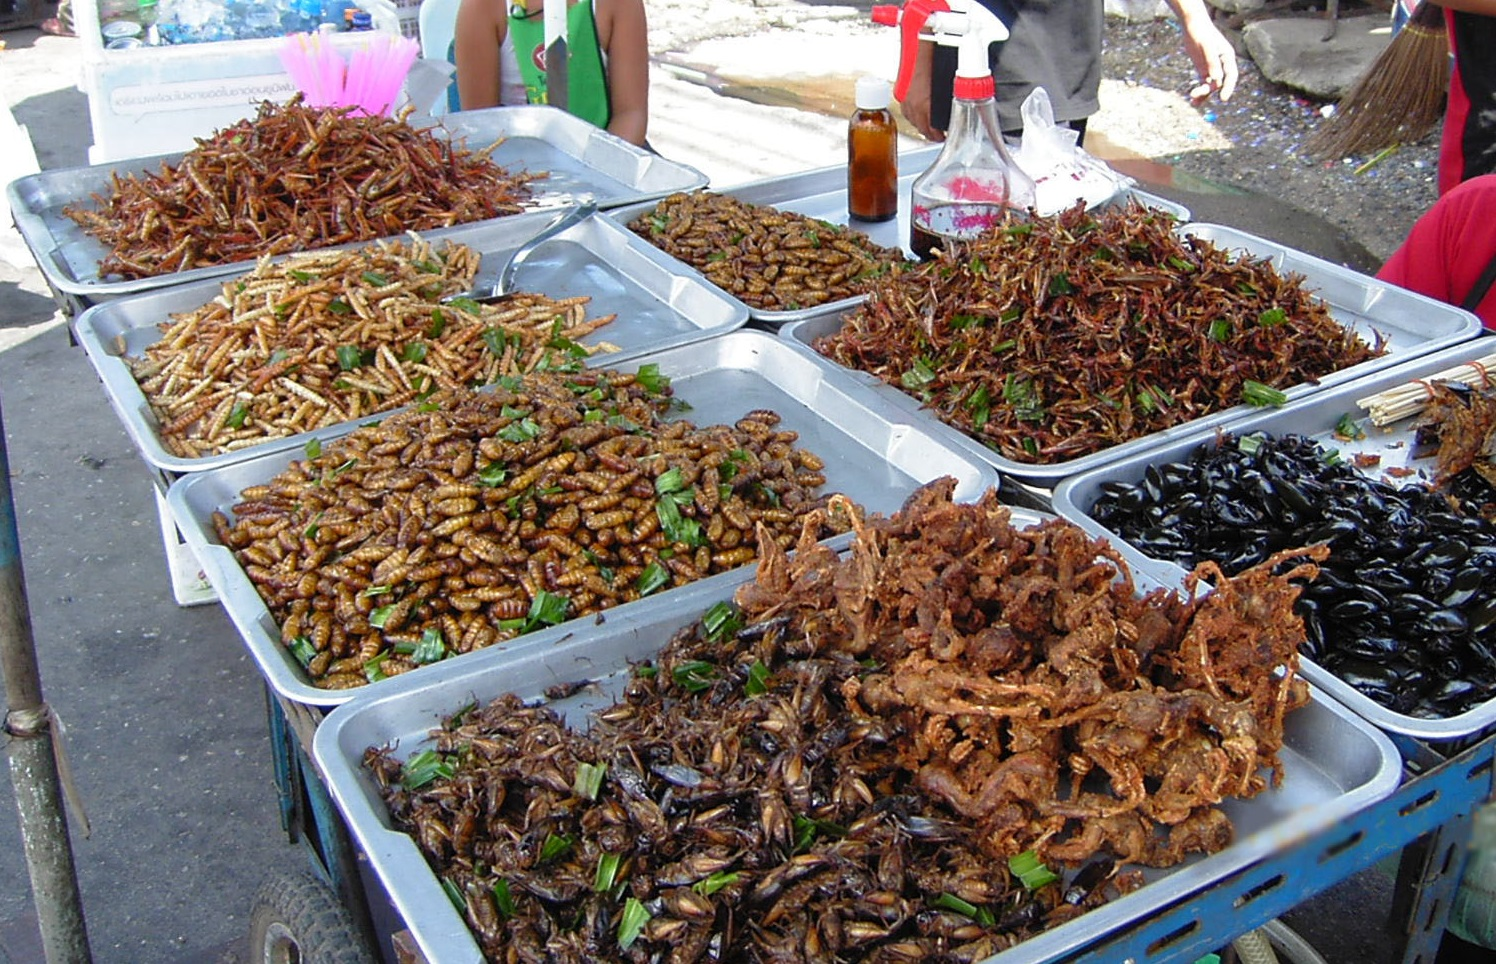 The scientists said that halving consumption of animal products by eating more insects would free up 1680m ha of land